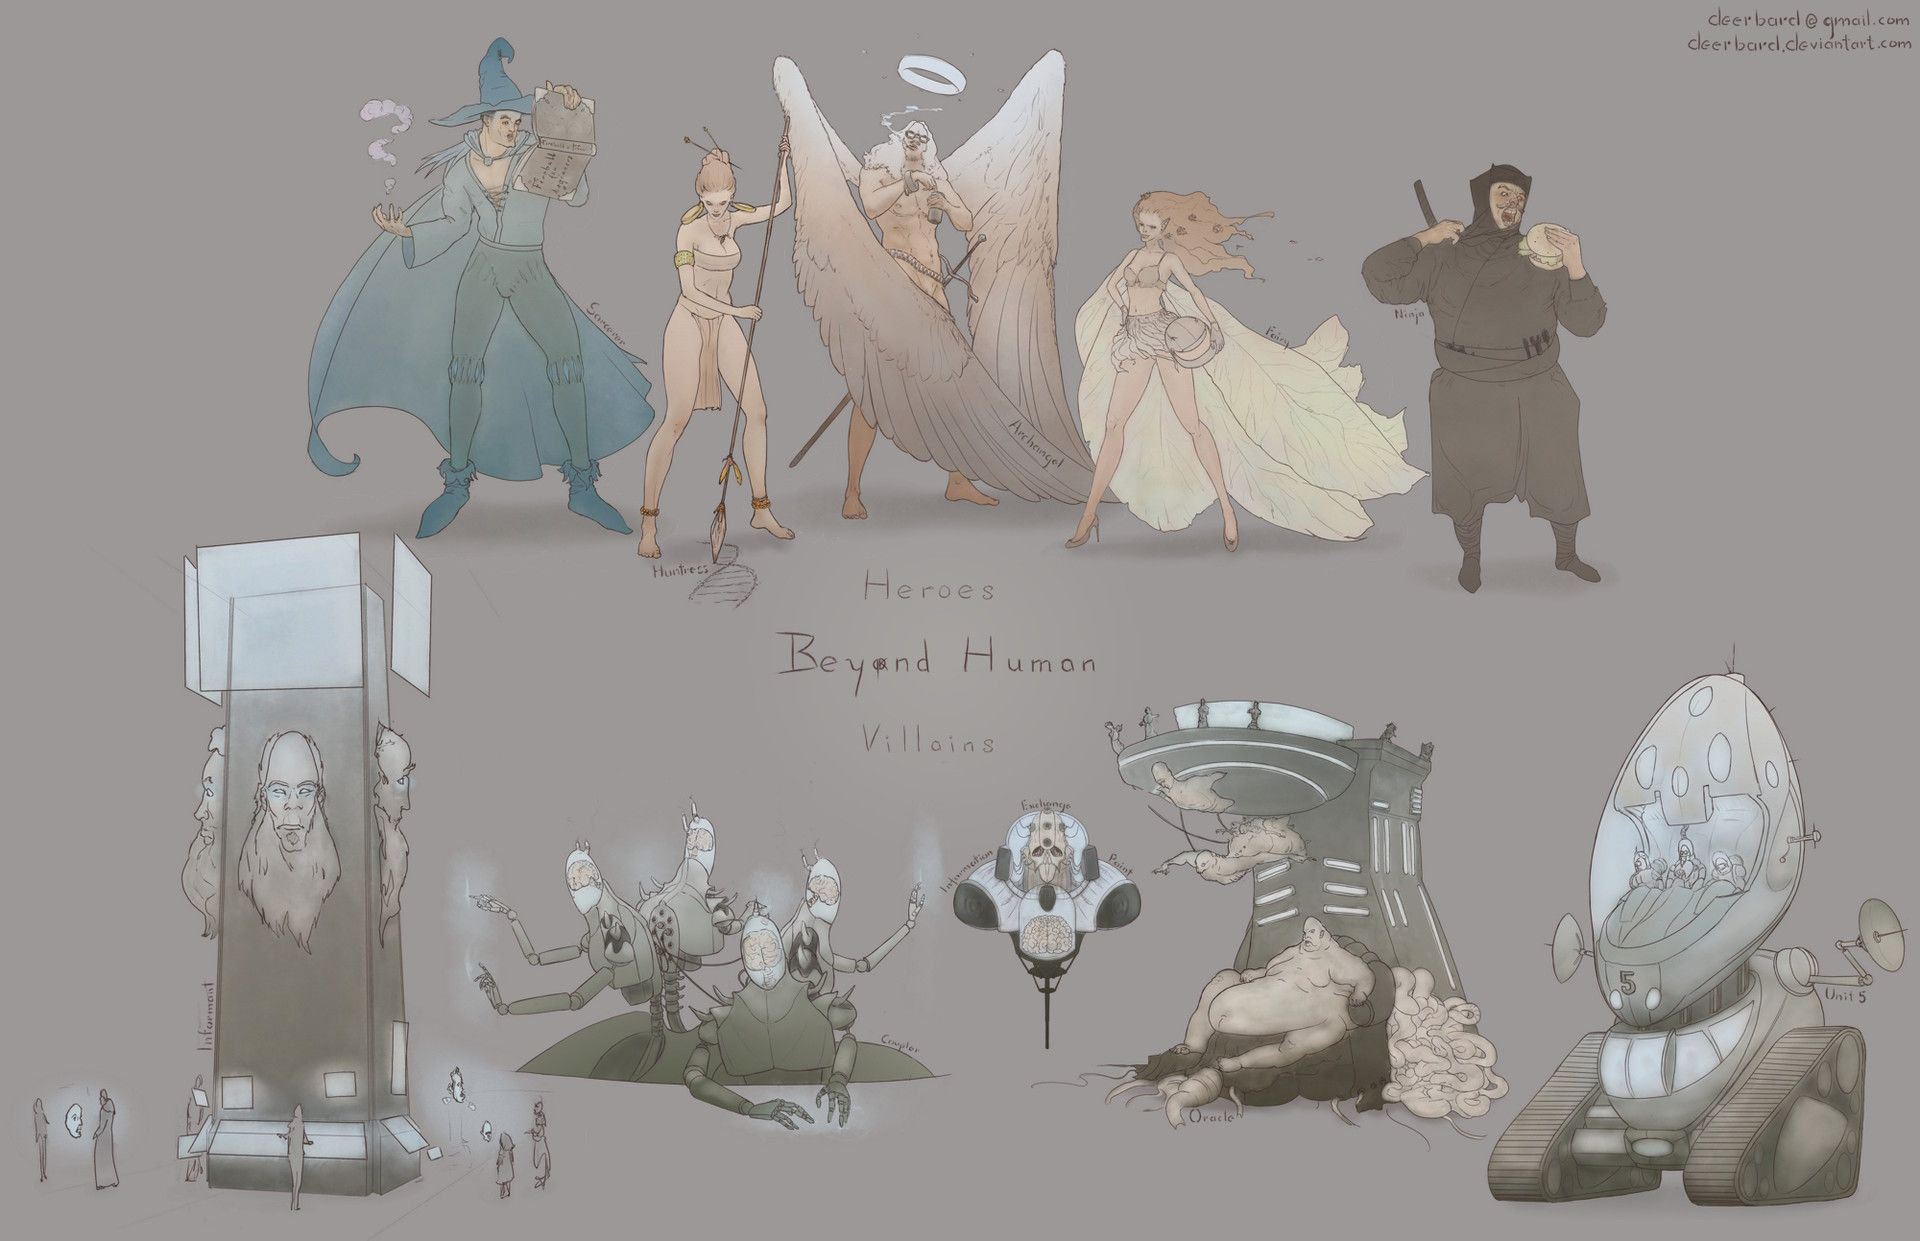 ArtStation - D e e r b a r d's submission on Beyond Human - Character Design